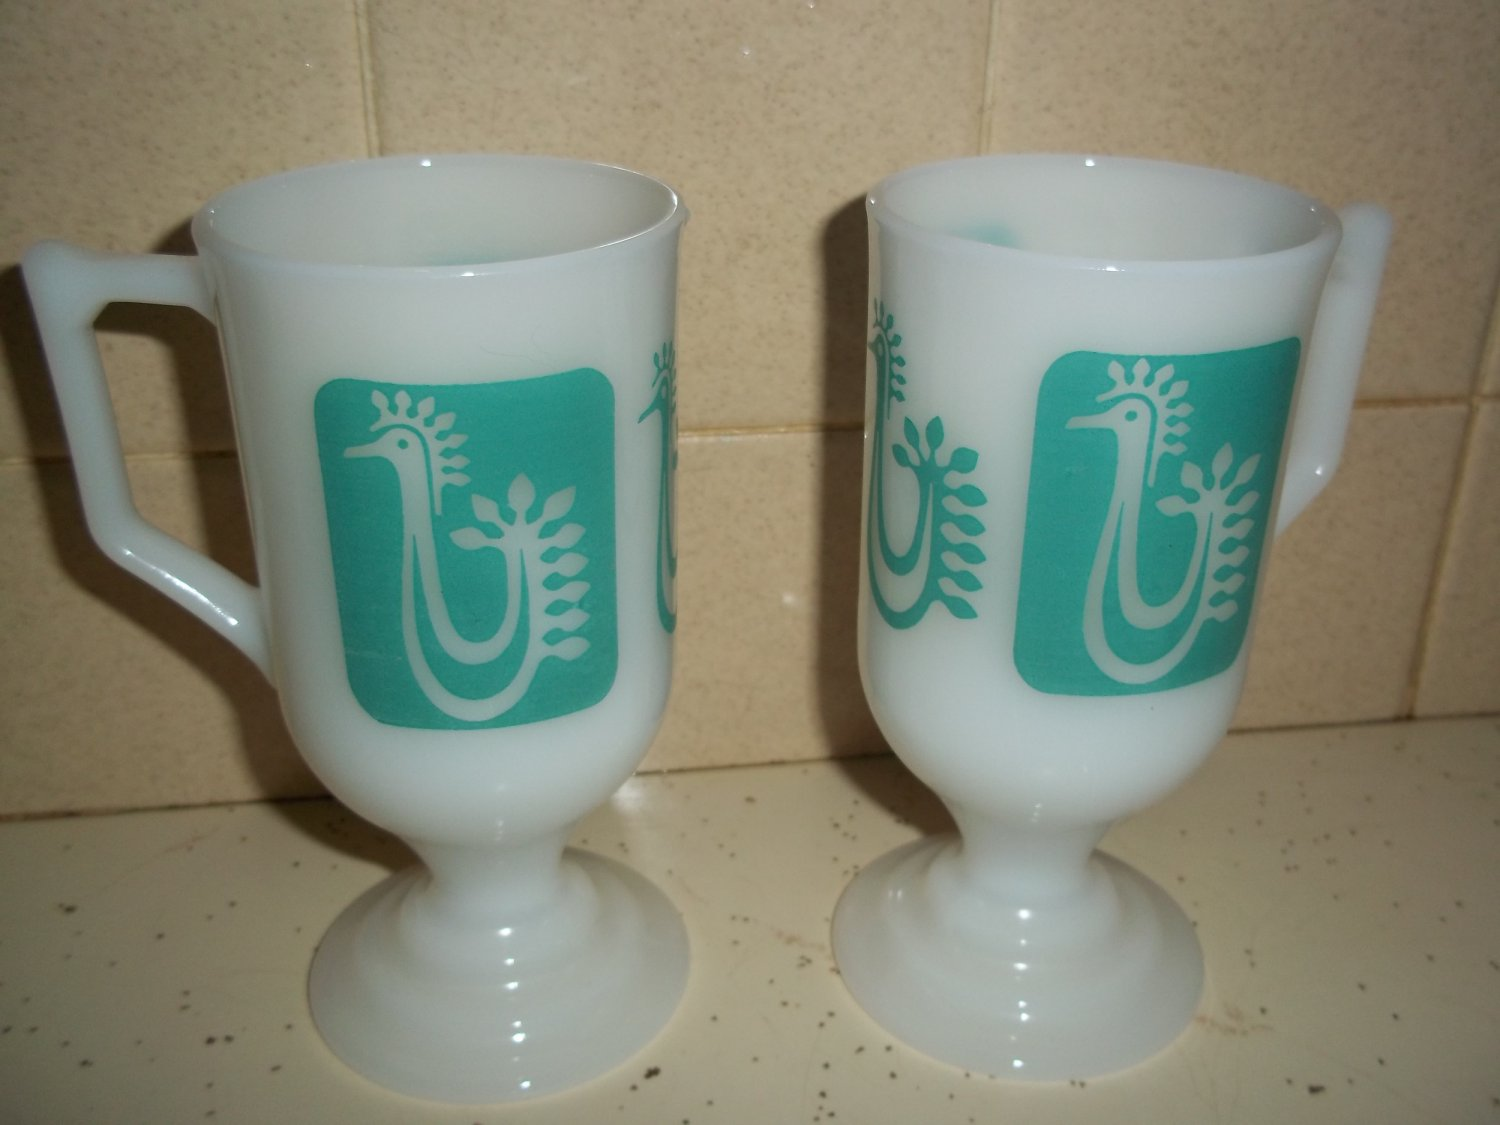 2 VTG MILK GLASS PEDESTAL COFFEE MUGS TURQUOISE ROOSTER